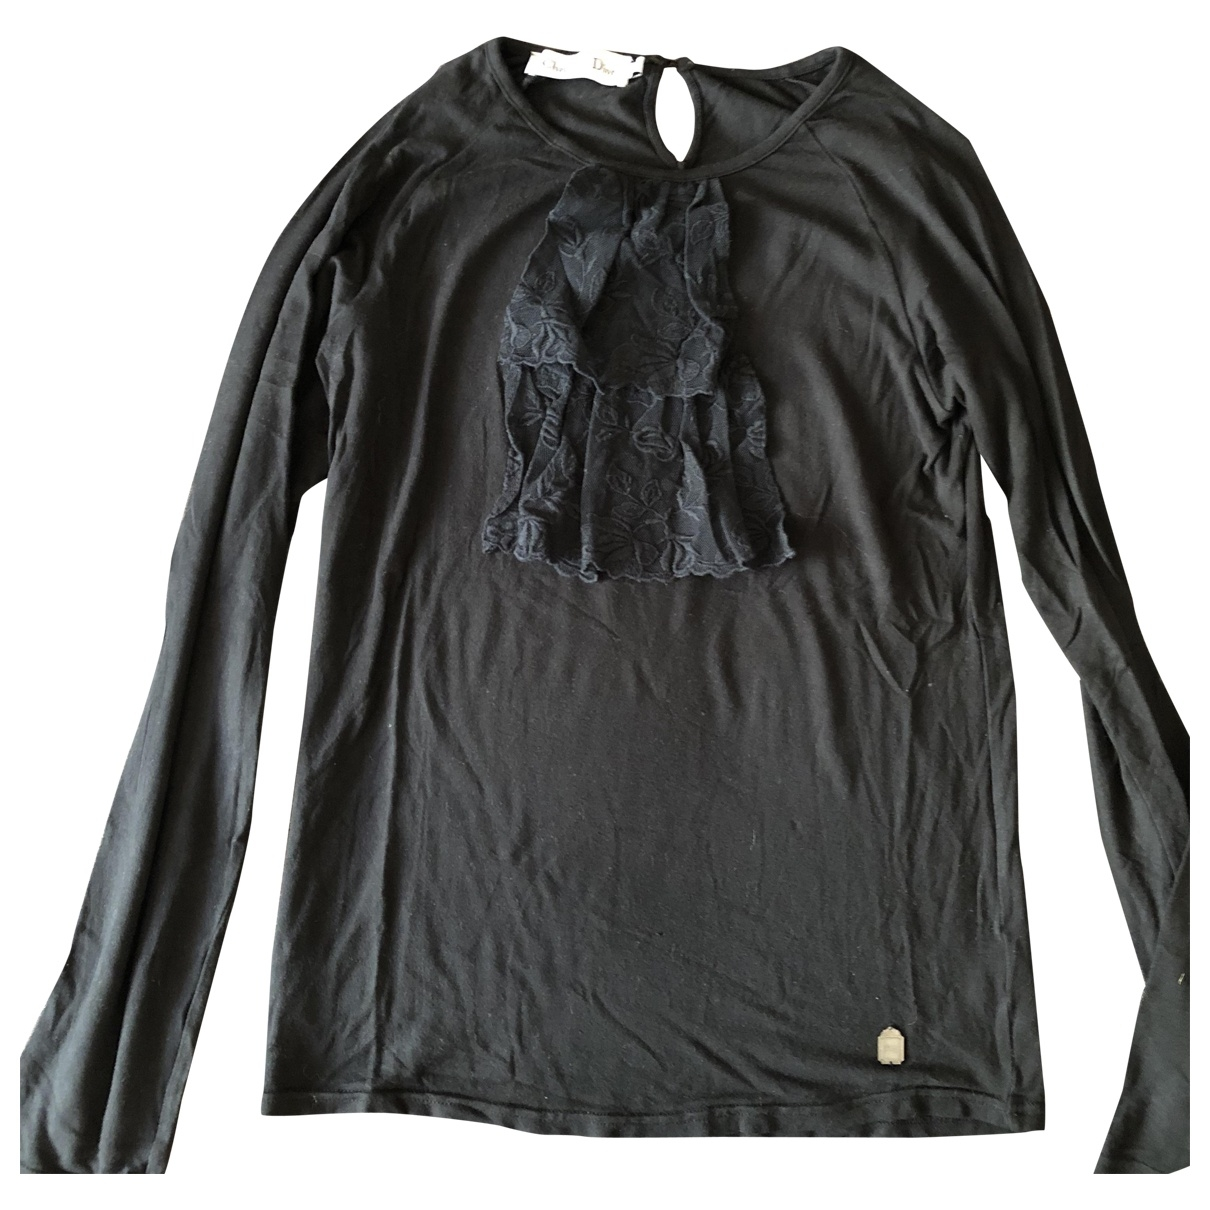 Dior \N Black Cotton  top for Kids 12 years - XS FR